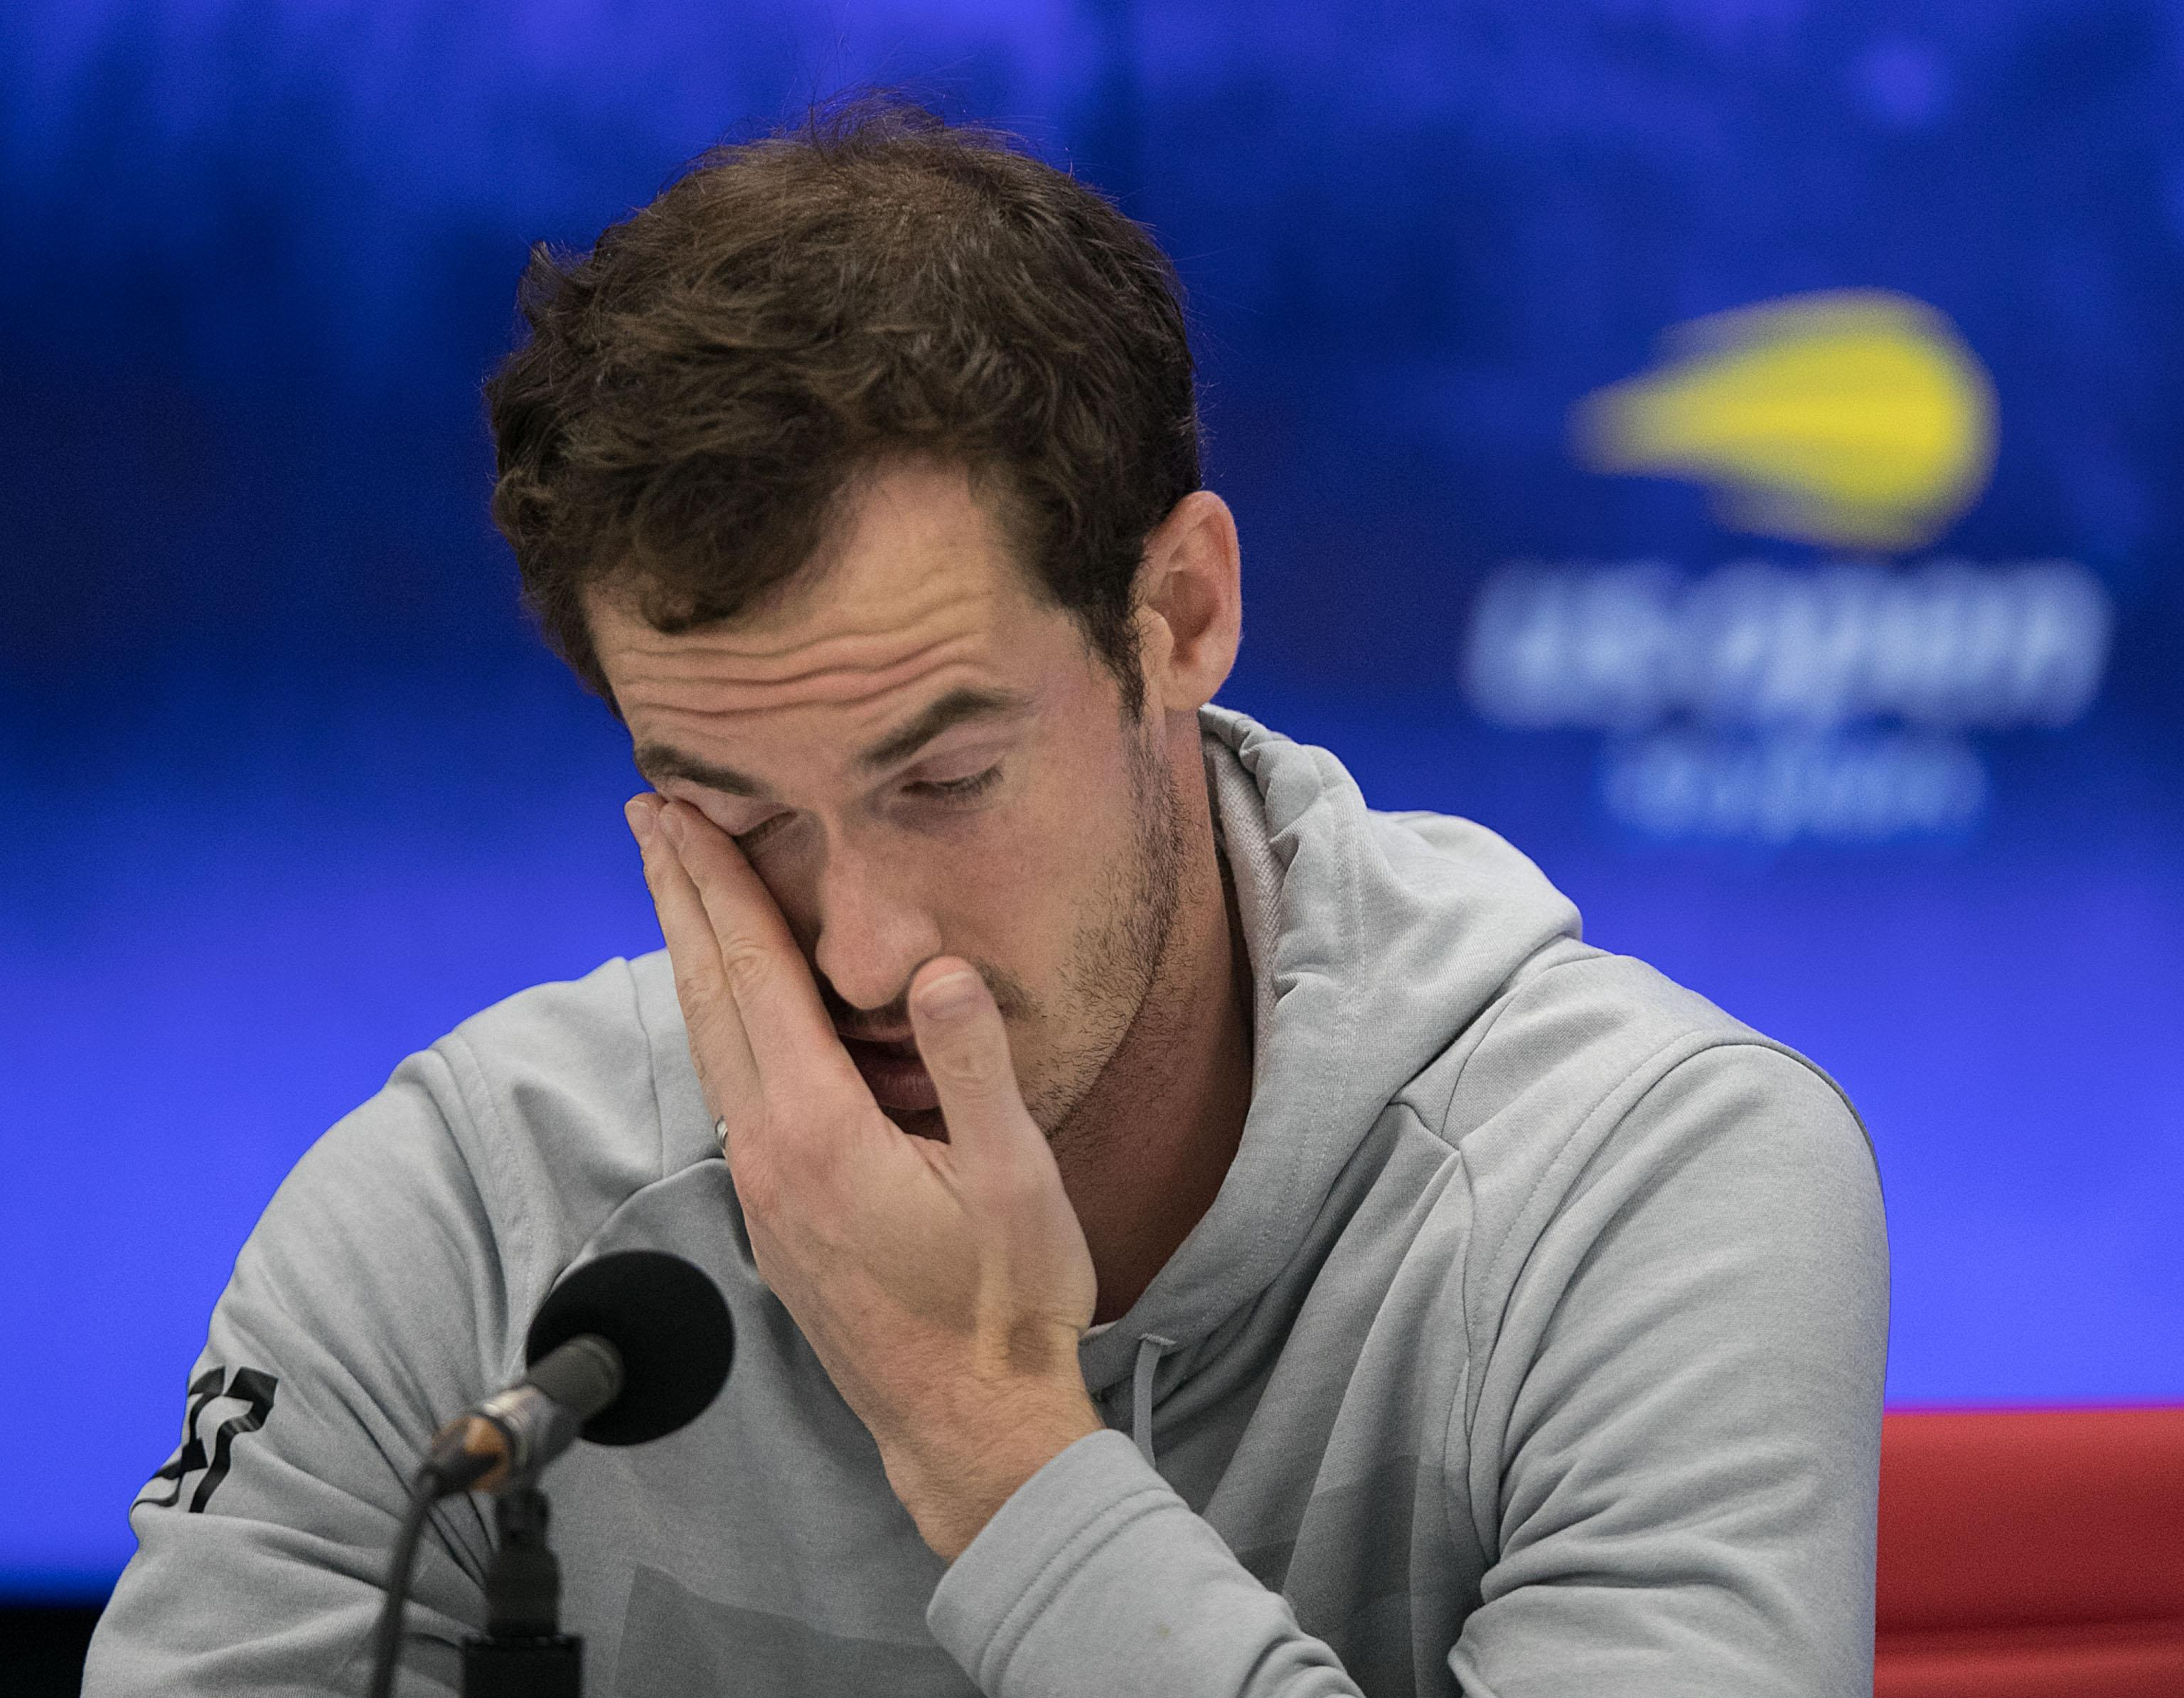 Andy Murray told reporters he had to remind the US Open officials of the rules over coaching